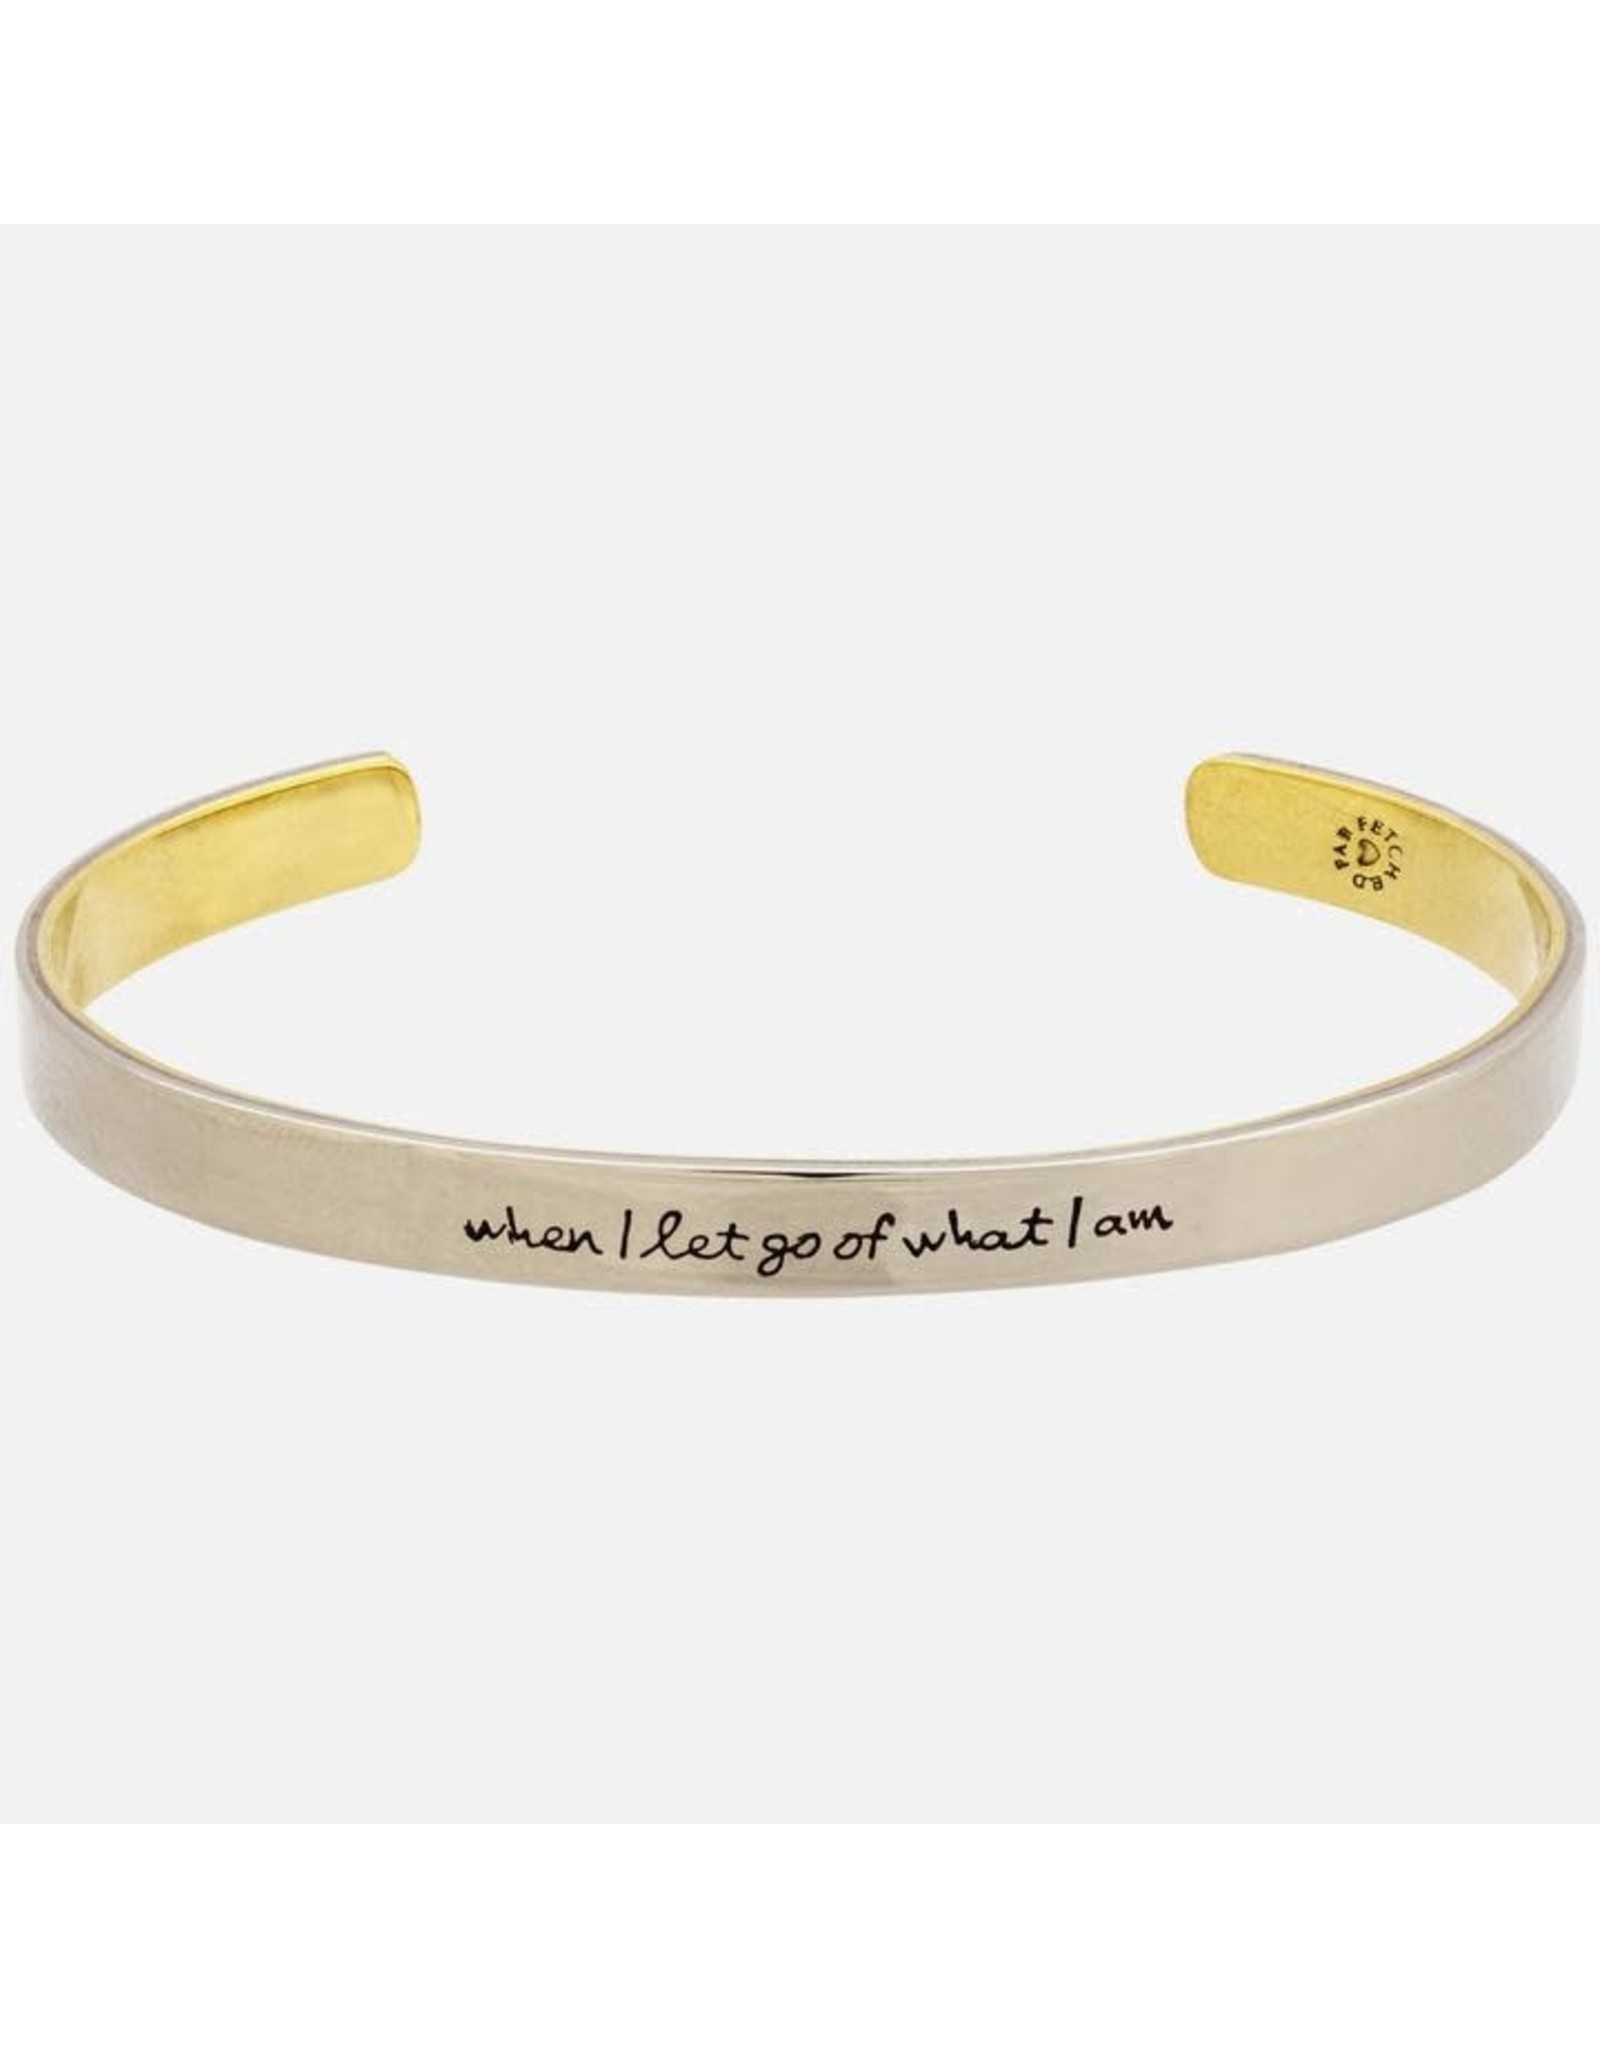 When I Let Go of What I am, Stackable Cuff, Mexico